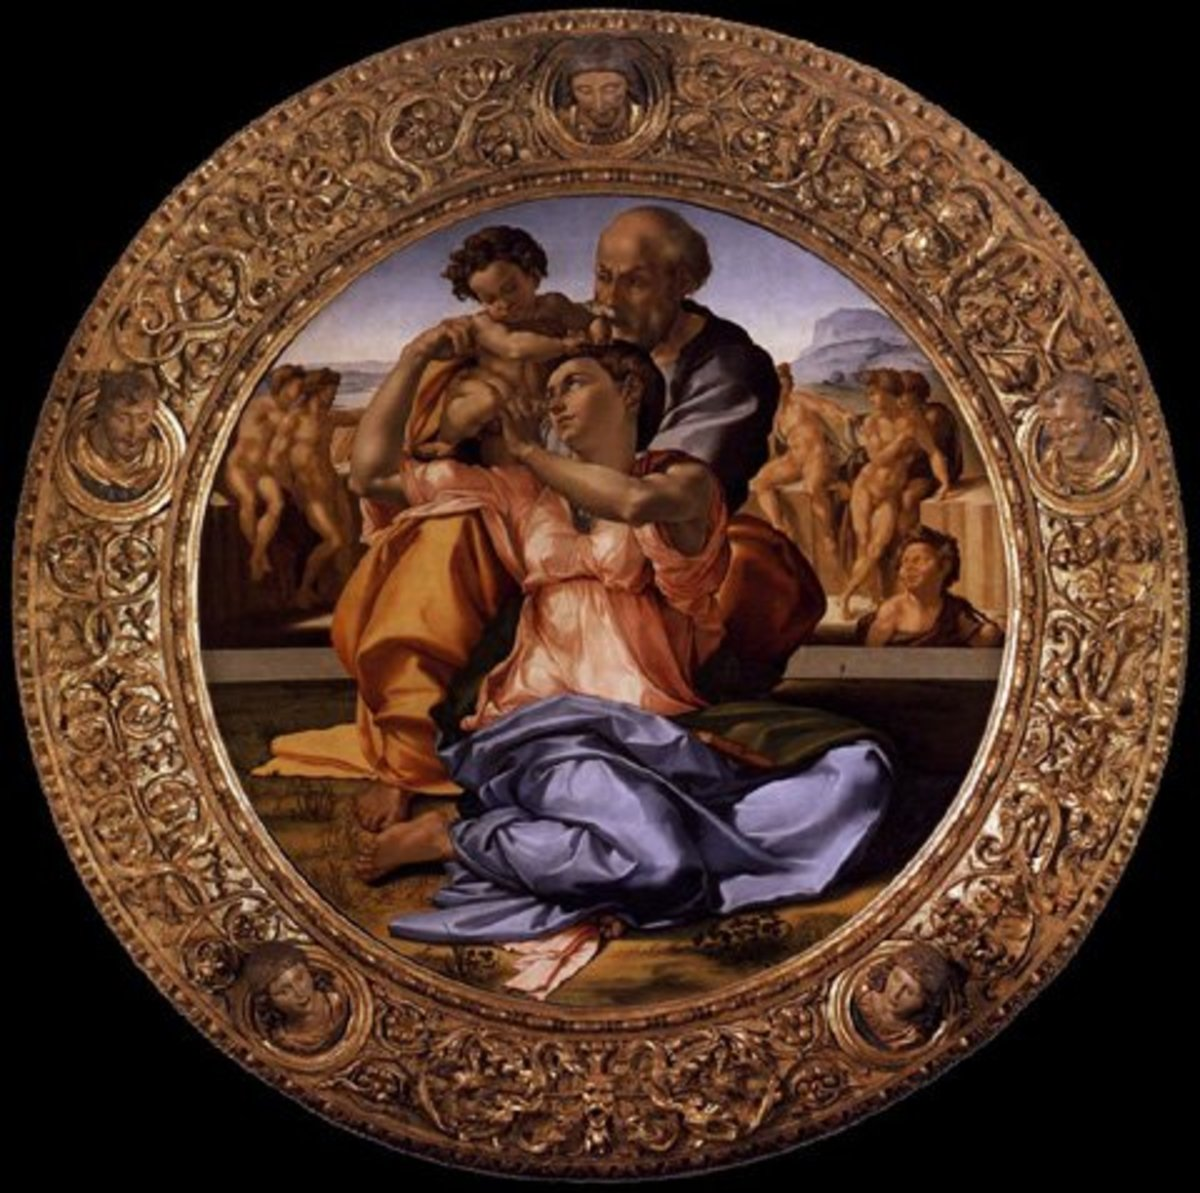 The Tondo Doni is still in its original frame, probably designed by Michelangelo himself and carved by skilled engravers (the Del Tasso)